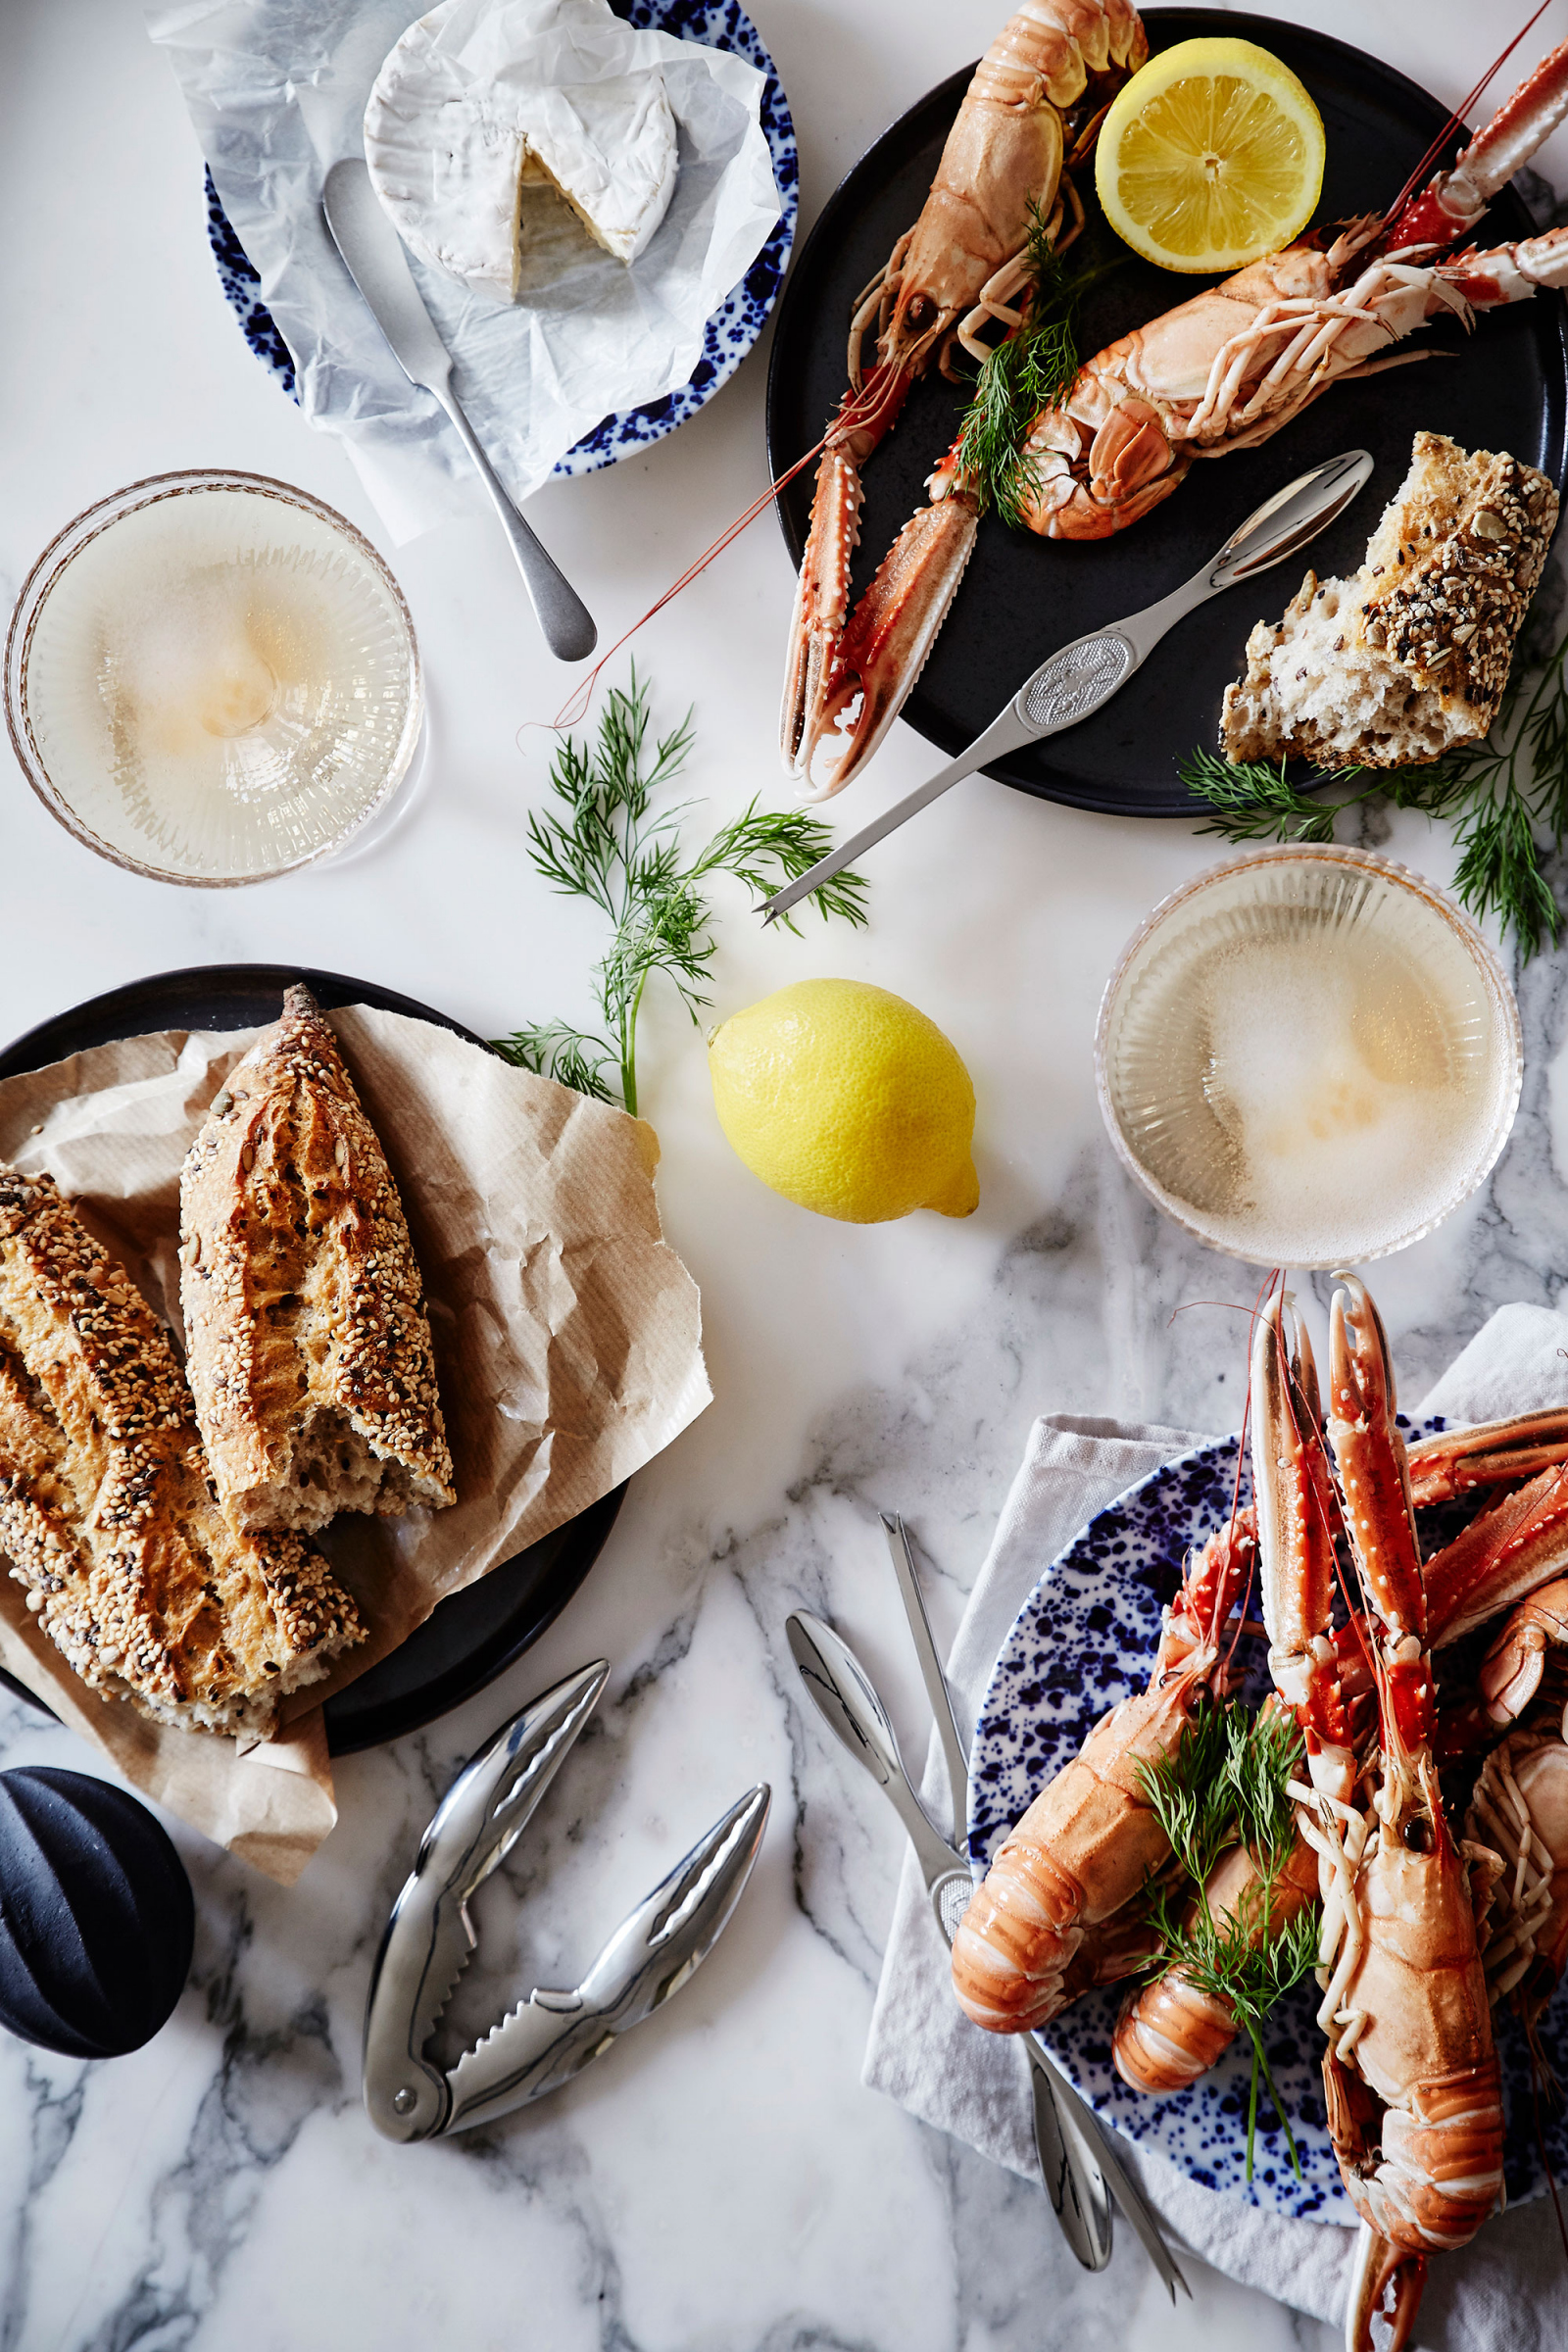 Crayfishes, snaps, singing and setting the table! Artilleriet invites You to a typical swedish CRAYFISH PARTY!